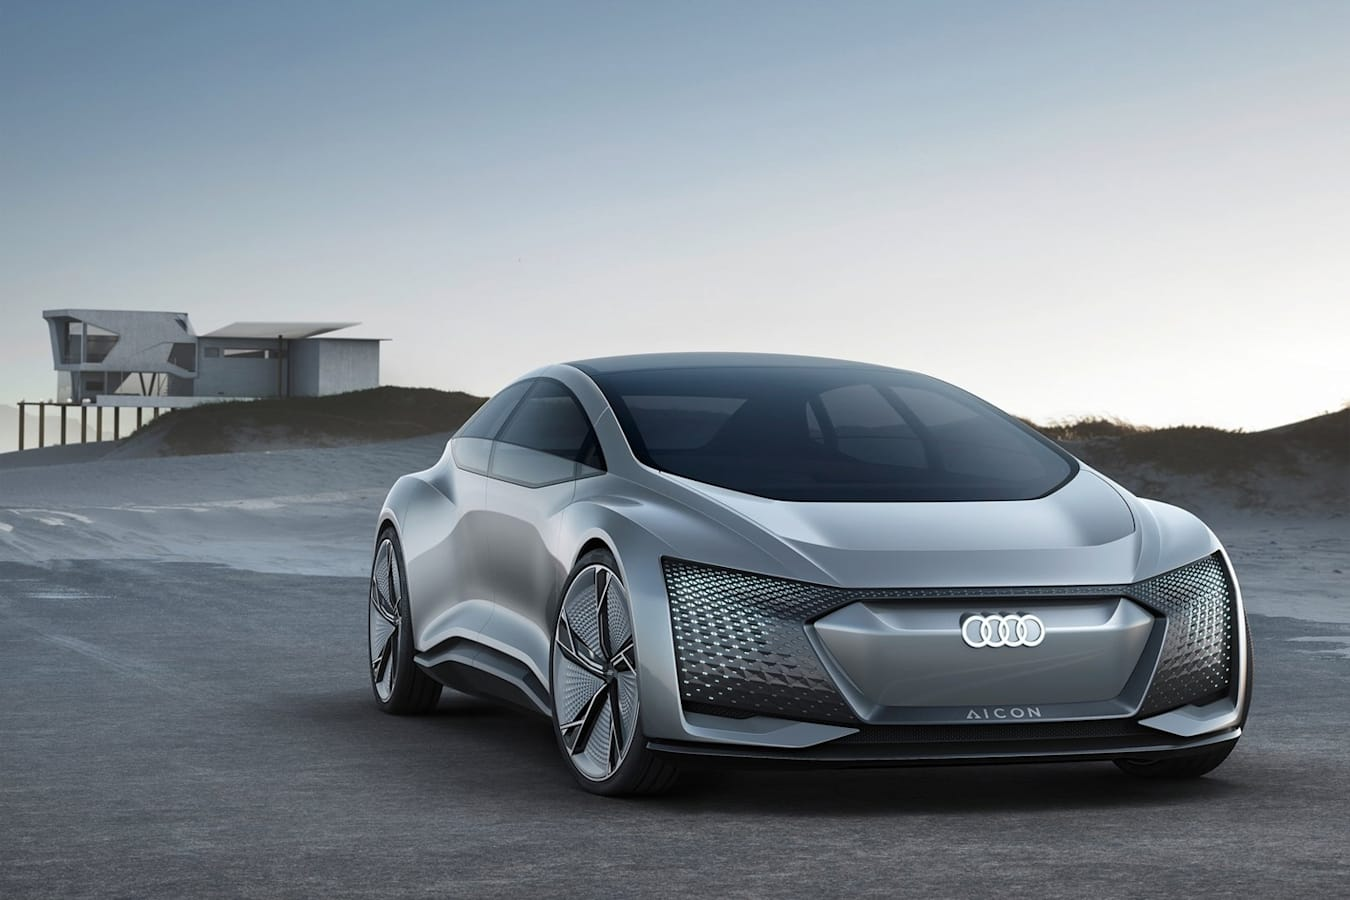 Best Concepts Of 2017 Audi Aicon Jpg